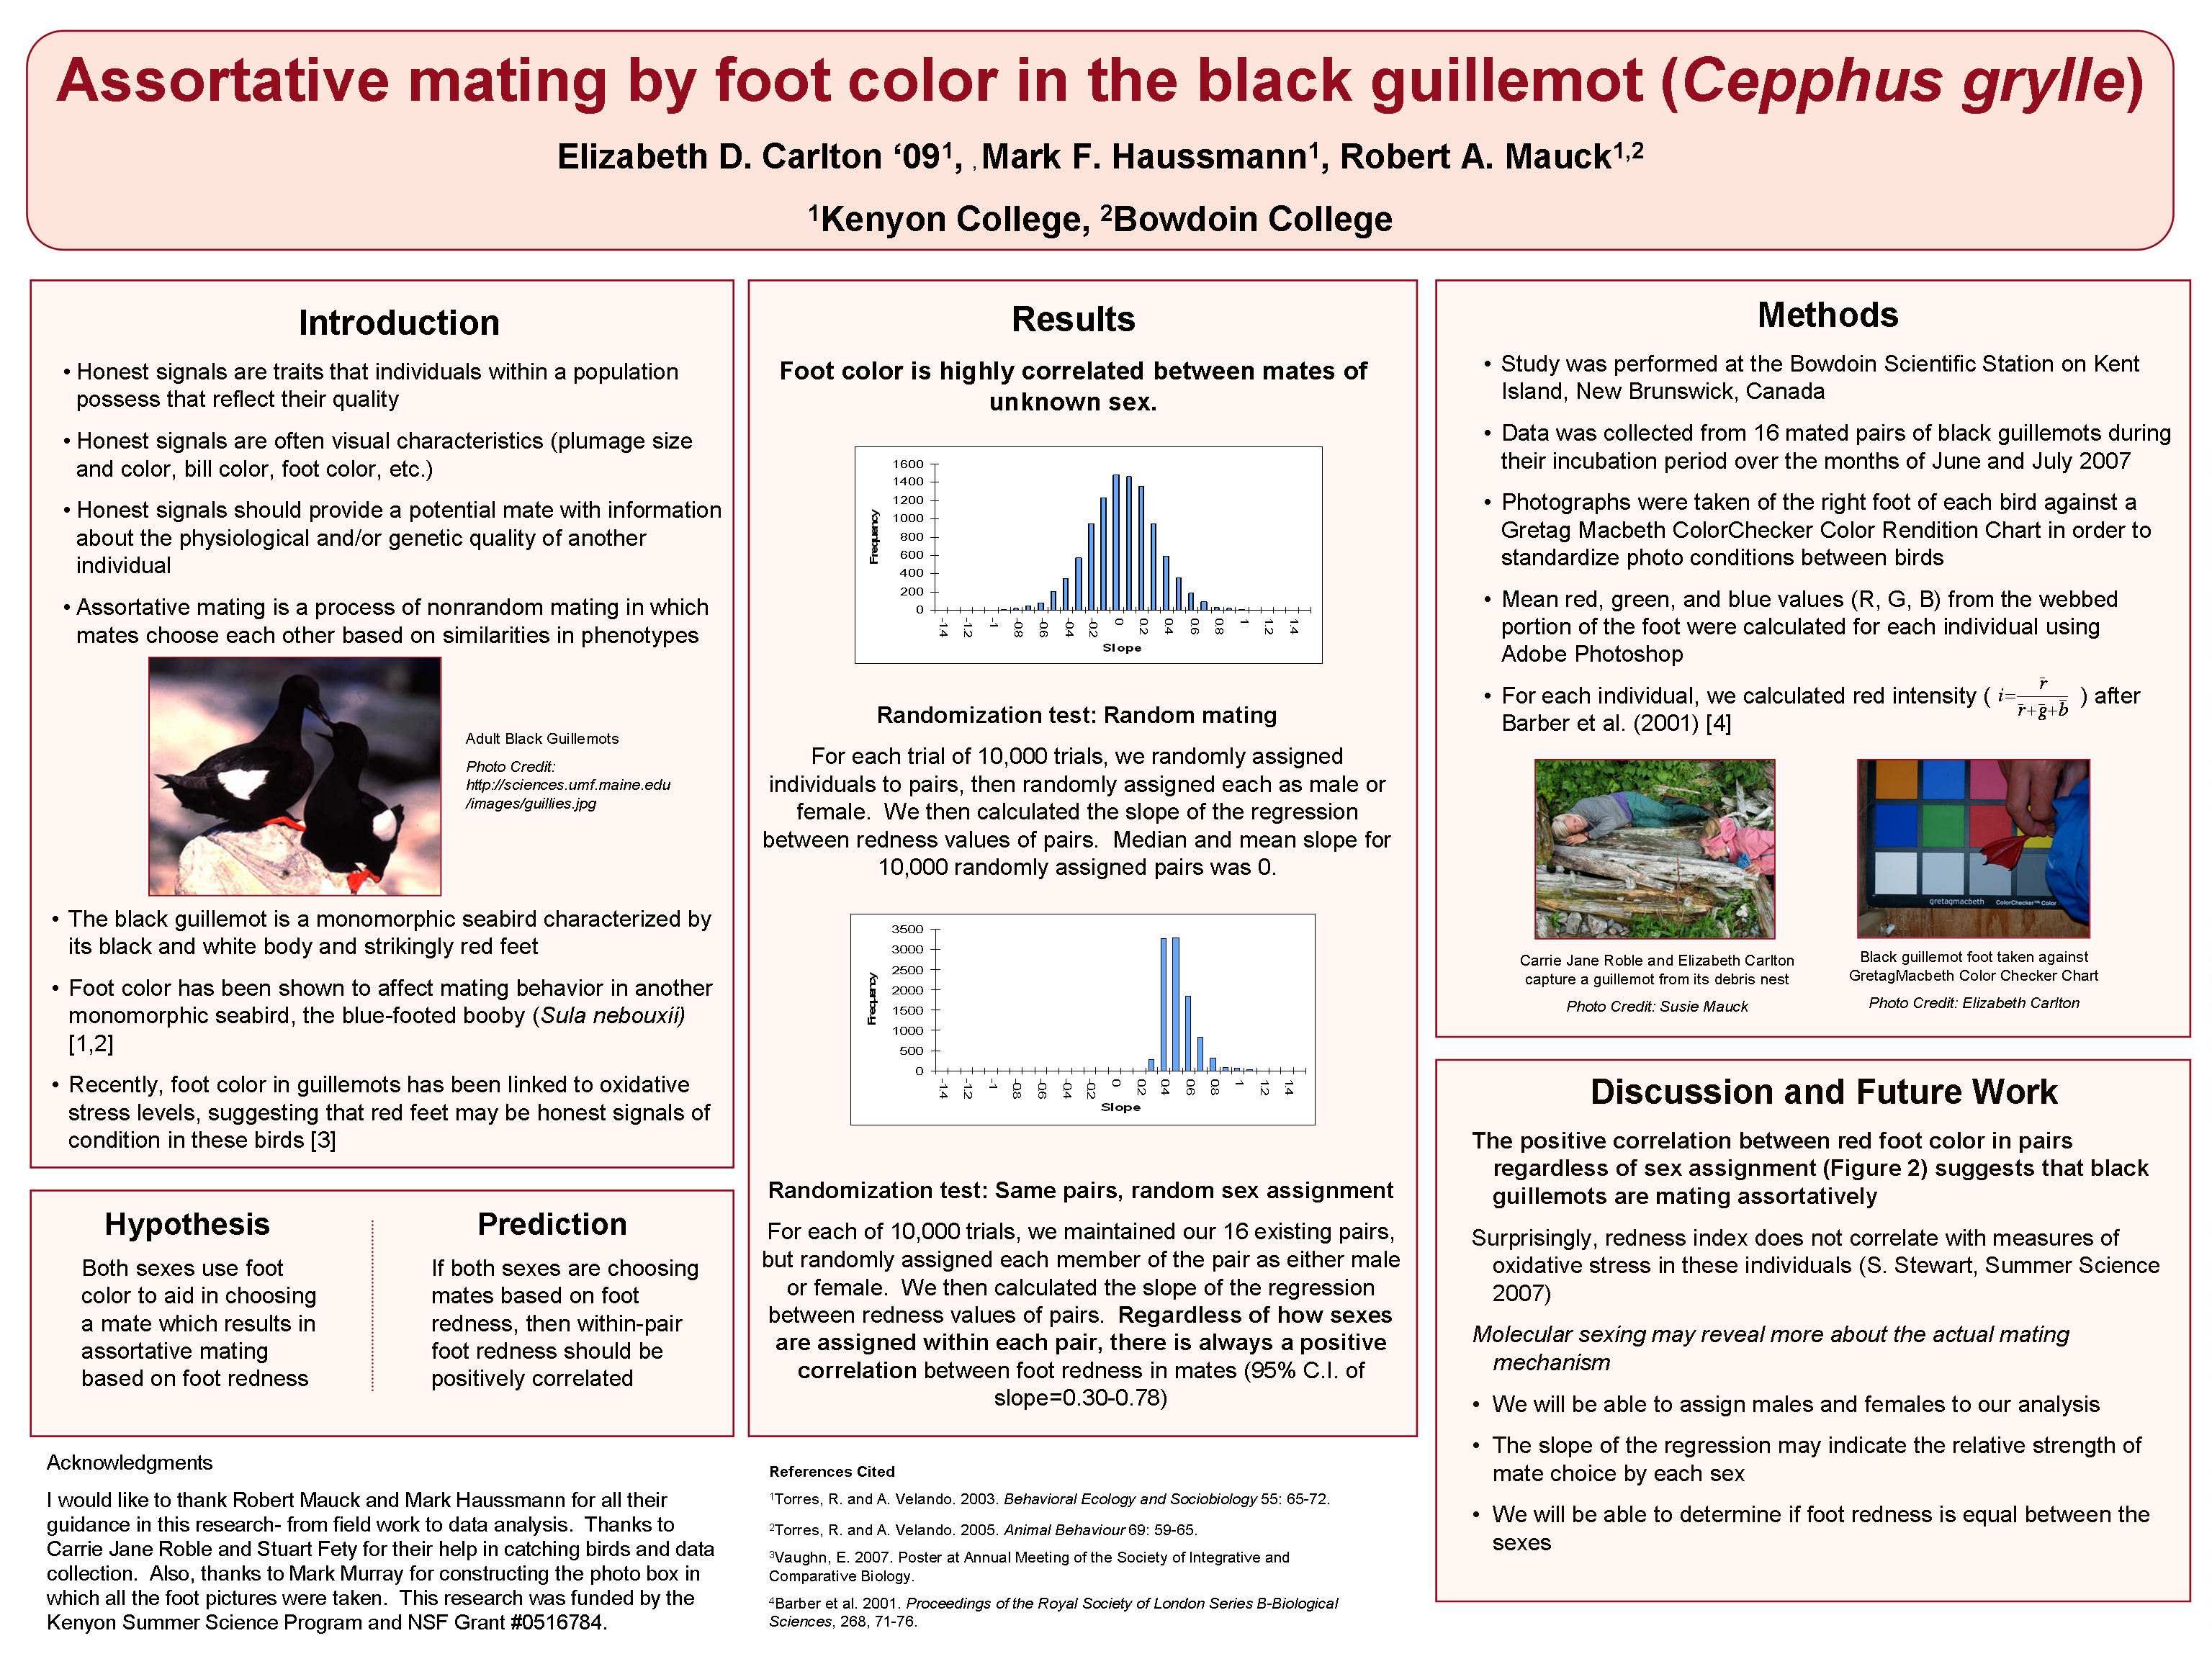 Poster Examples - How do I Design a Research Poster? - LibGuides ...